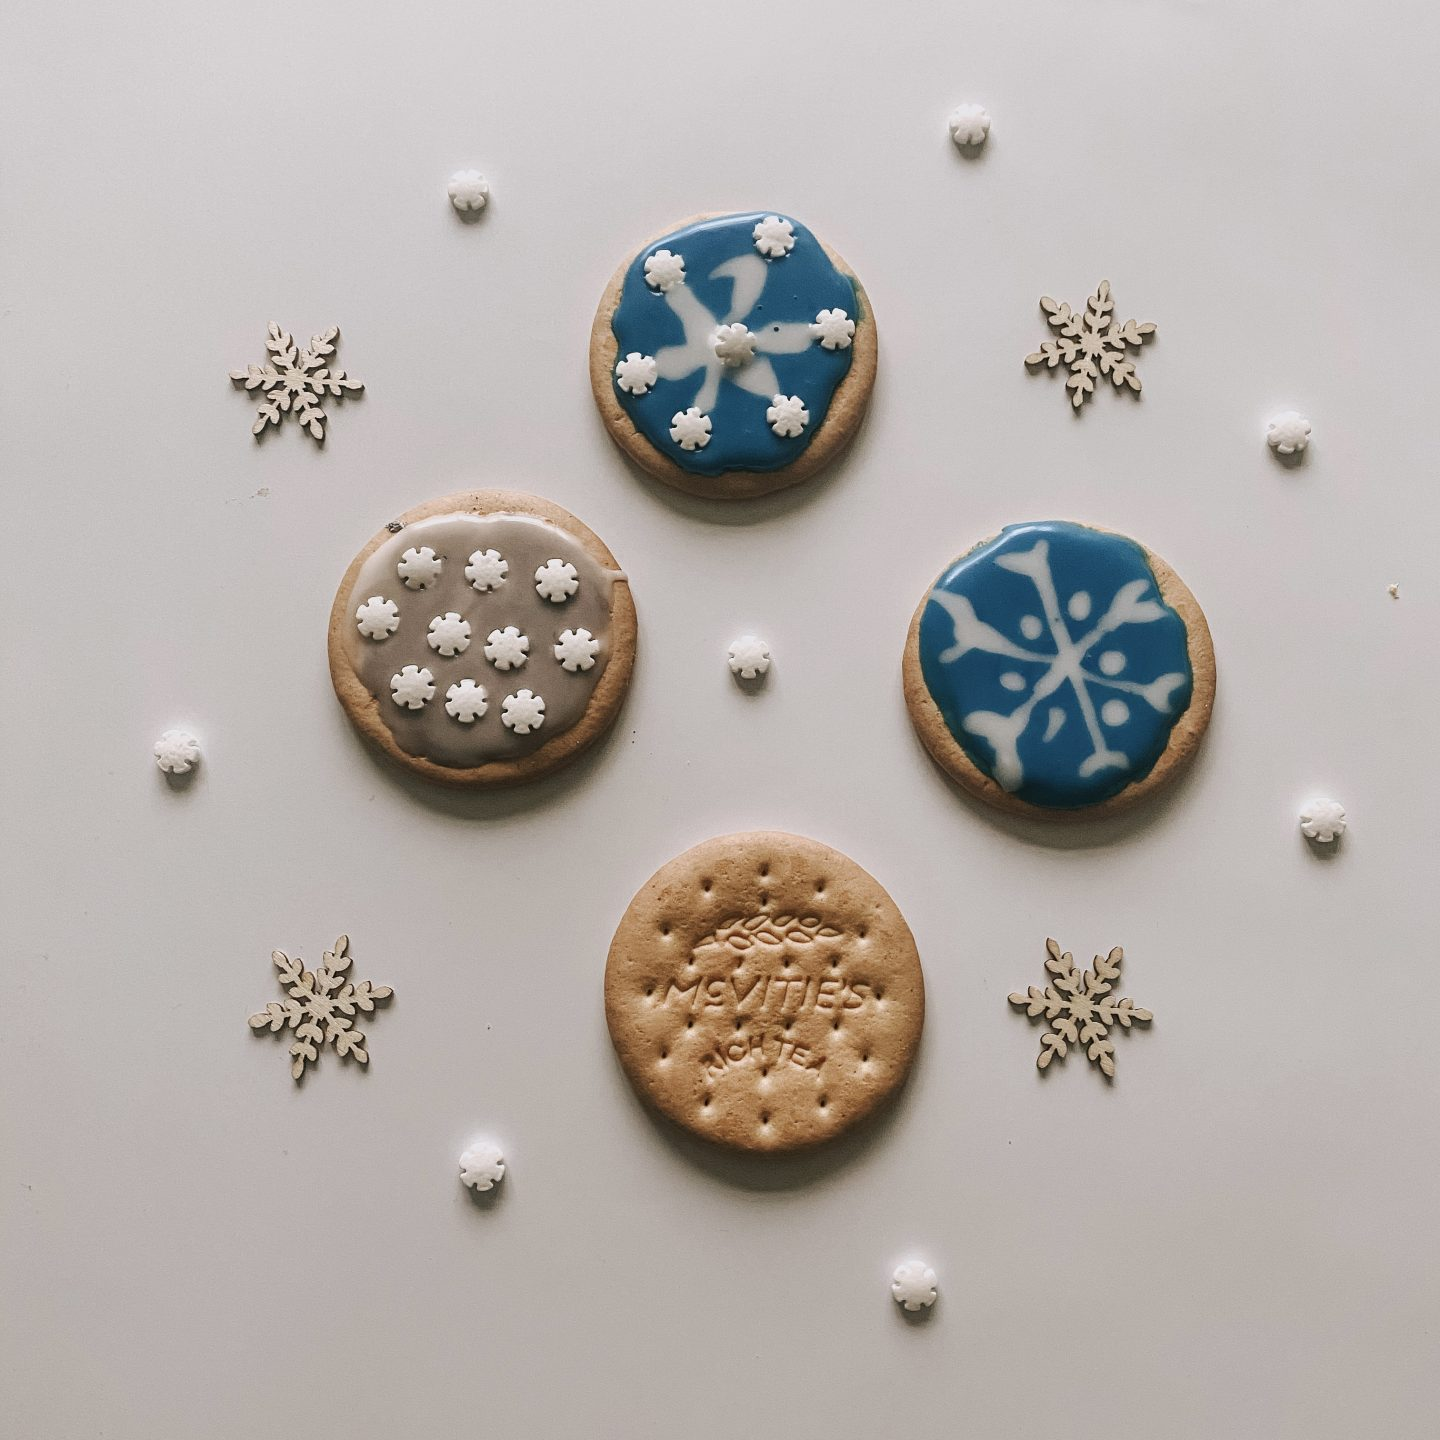 iced biscuits with blue icing and snowflake sprinkles